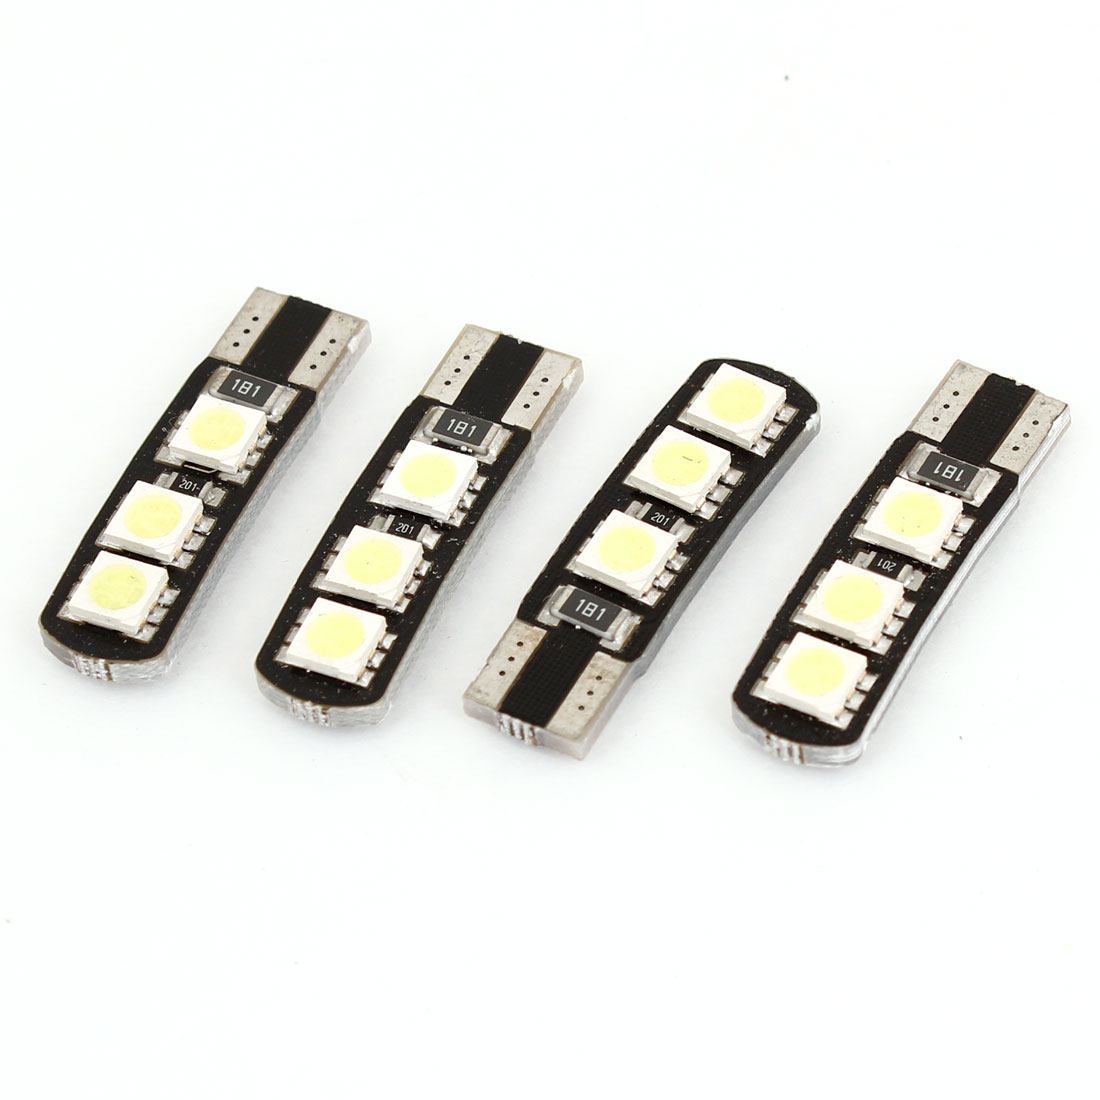 4 Pcs T10 6 White 5050 SMD LED Auto Car Error Free Canbus Light